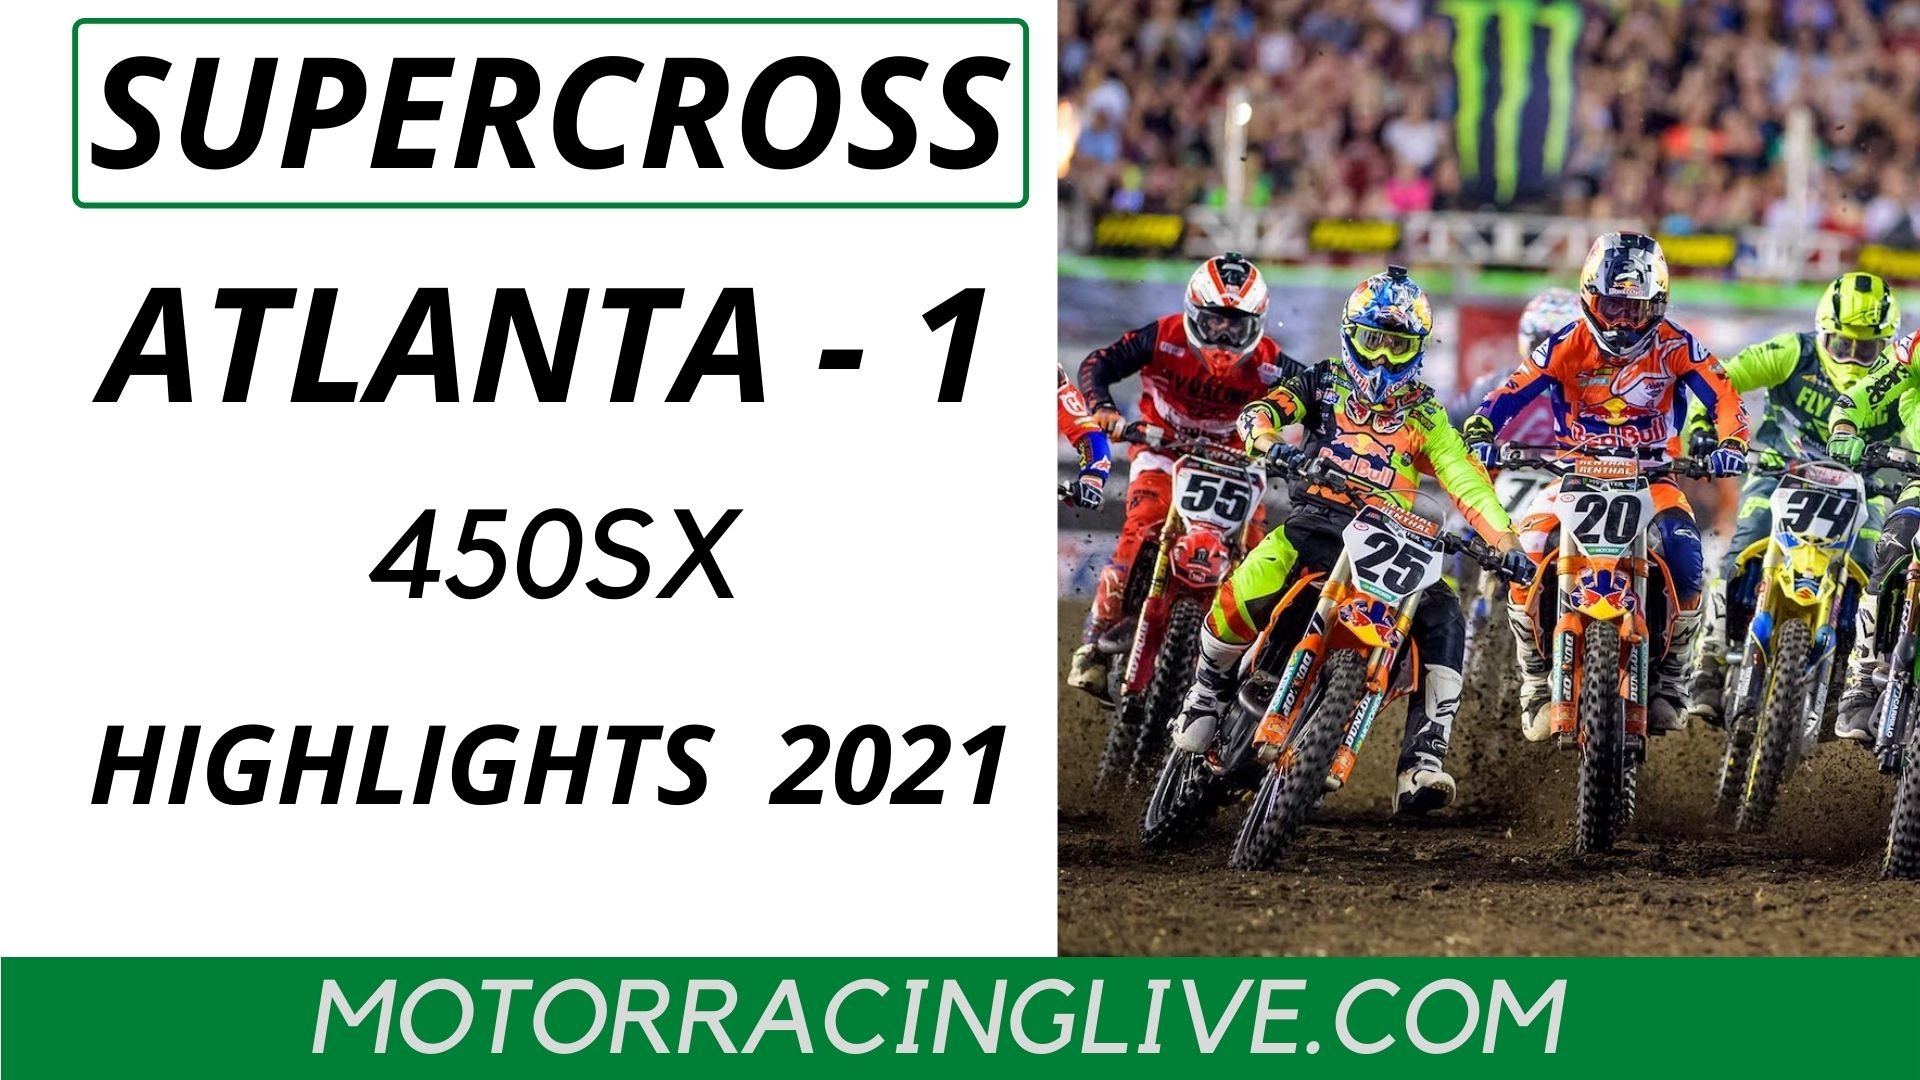 Atlanta 1 Round 13 450SX Highlights 2021 Supercross